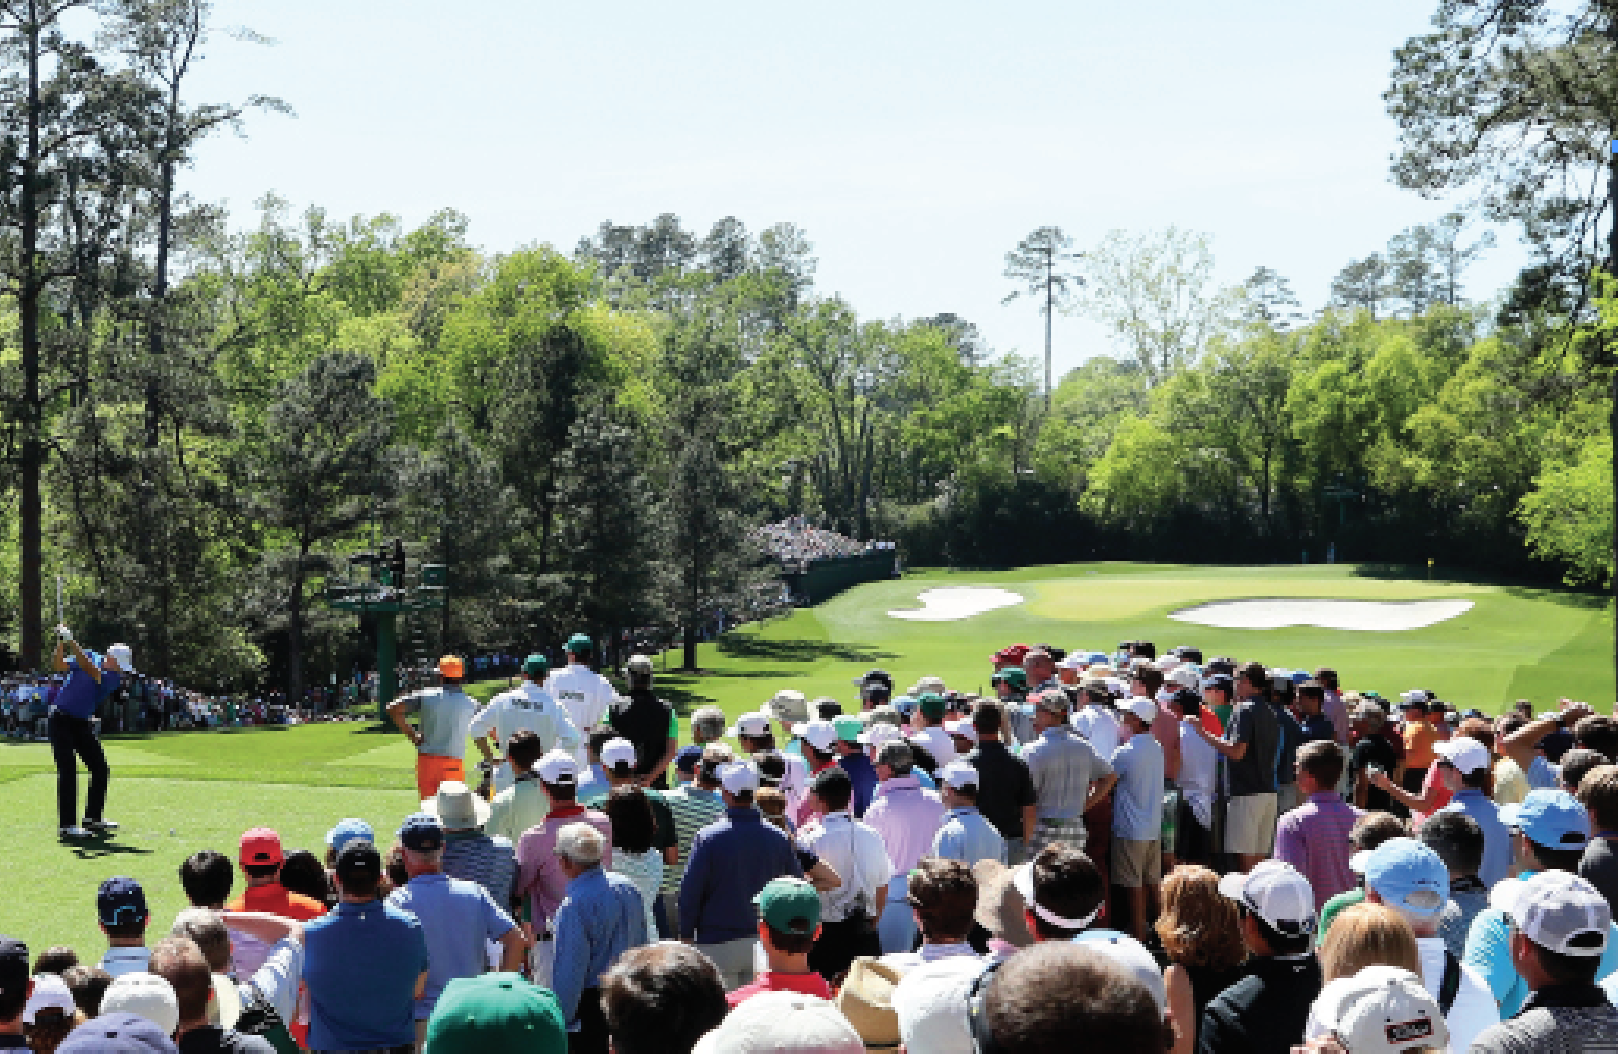 Jordan Spieth tees off on No. 4 in the 2017 Masters.